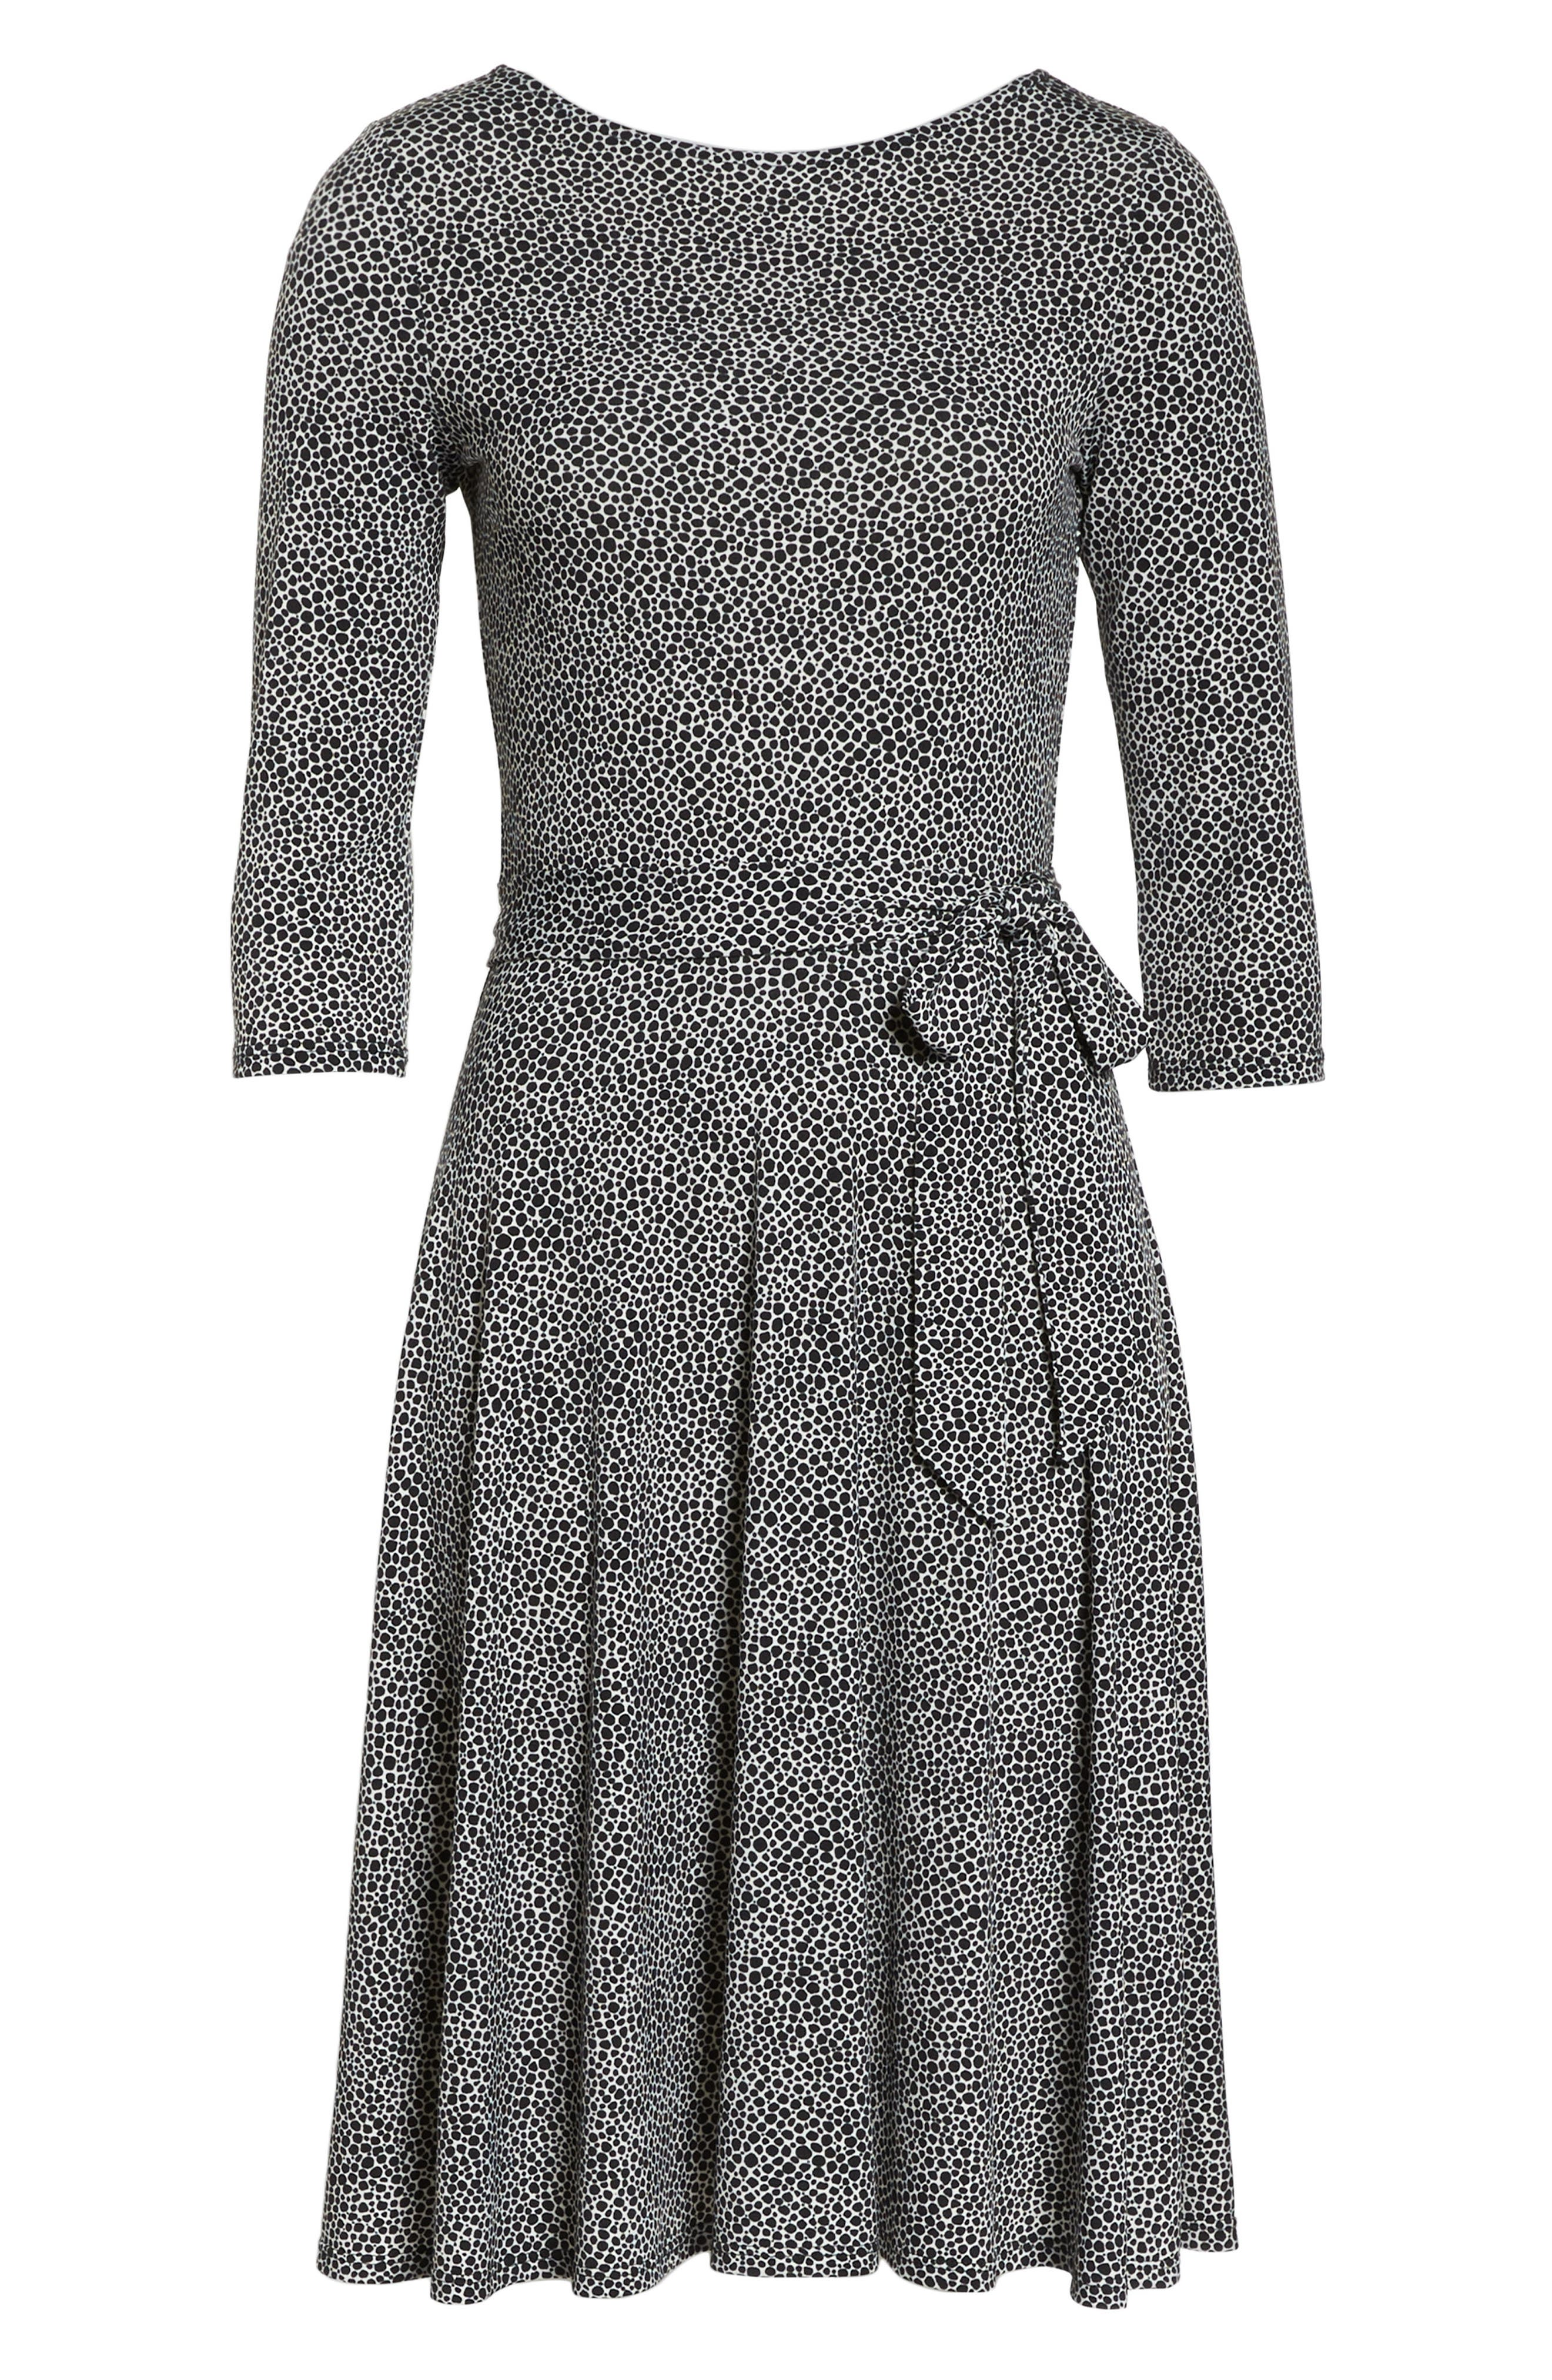 Belted Print Jersey A-Line Dress,                             Alternate thumbnail 7, color,                             PEBBLE